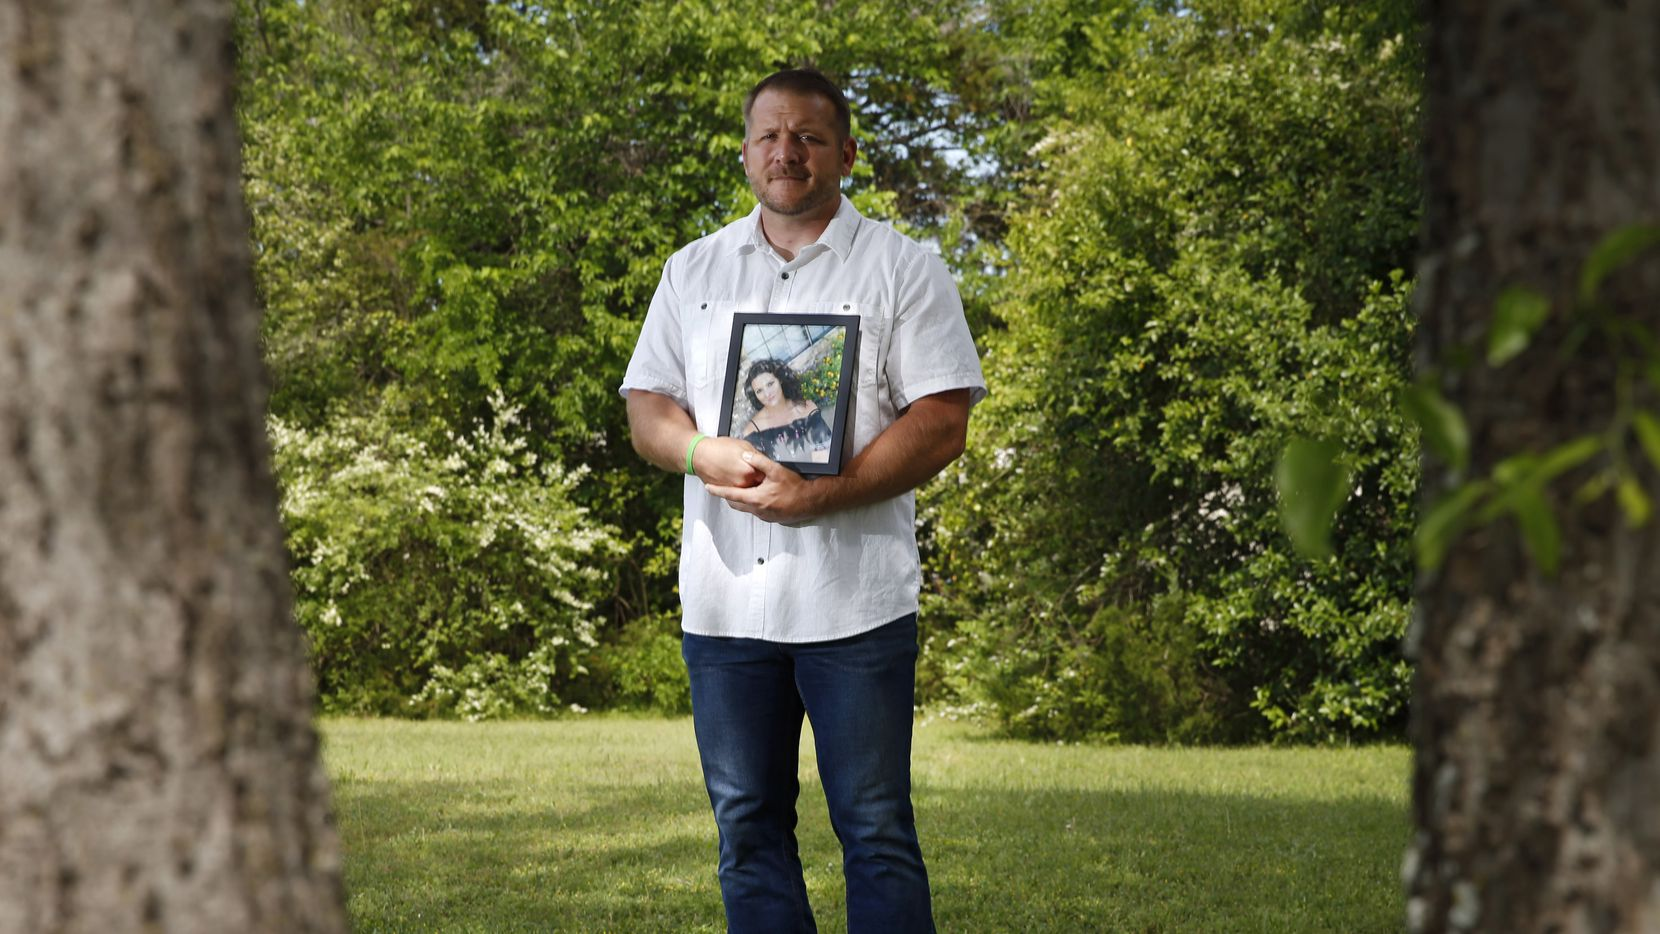 John Palmer poses for a portrait as he holds up a photo of his wife Katie Palmer in the front yard of their home in Denison on May 1.. John lost his wife Katie Palmer to a car accident in April. Katie's organs were donated and helped seven people.